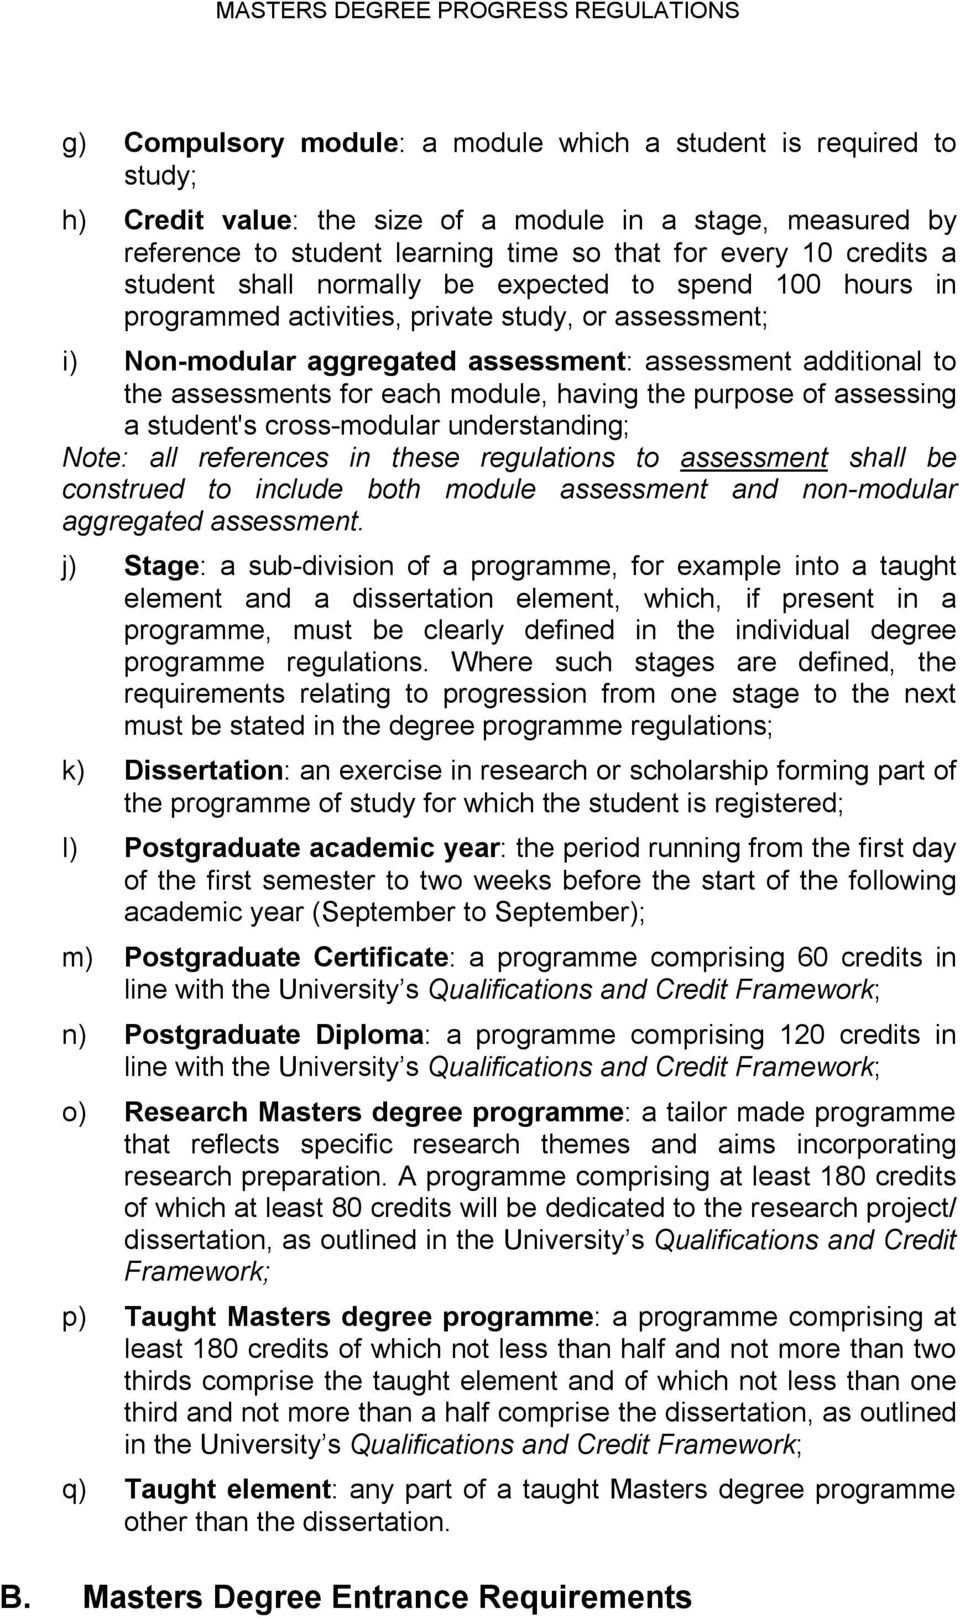 additional to the assessments for each module, having the purpose of assessing a student's cross modular understanding; Note: all references in these regulations to assessment shall be construed to